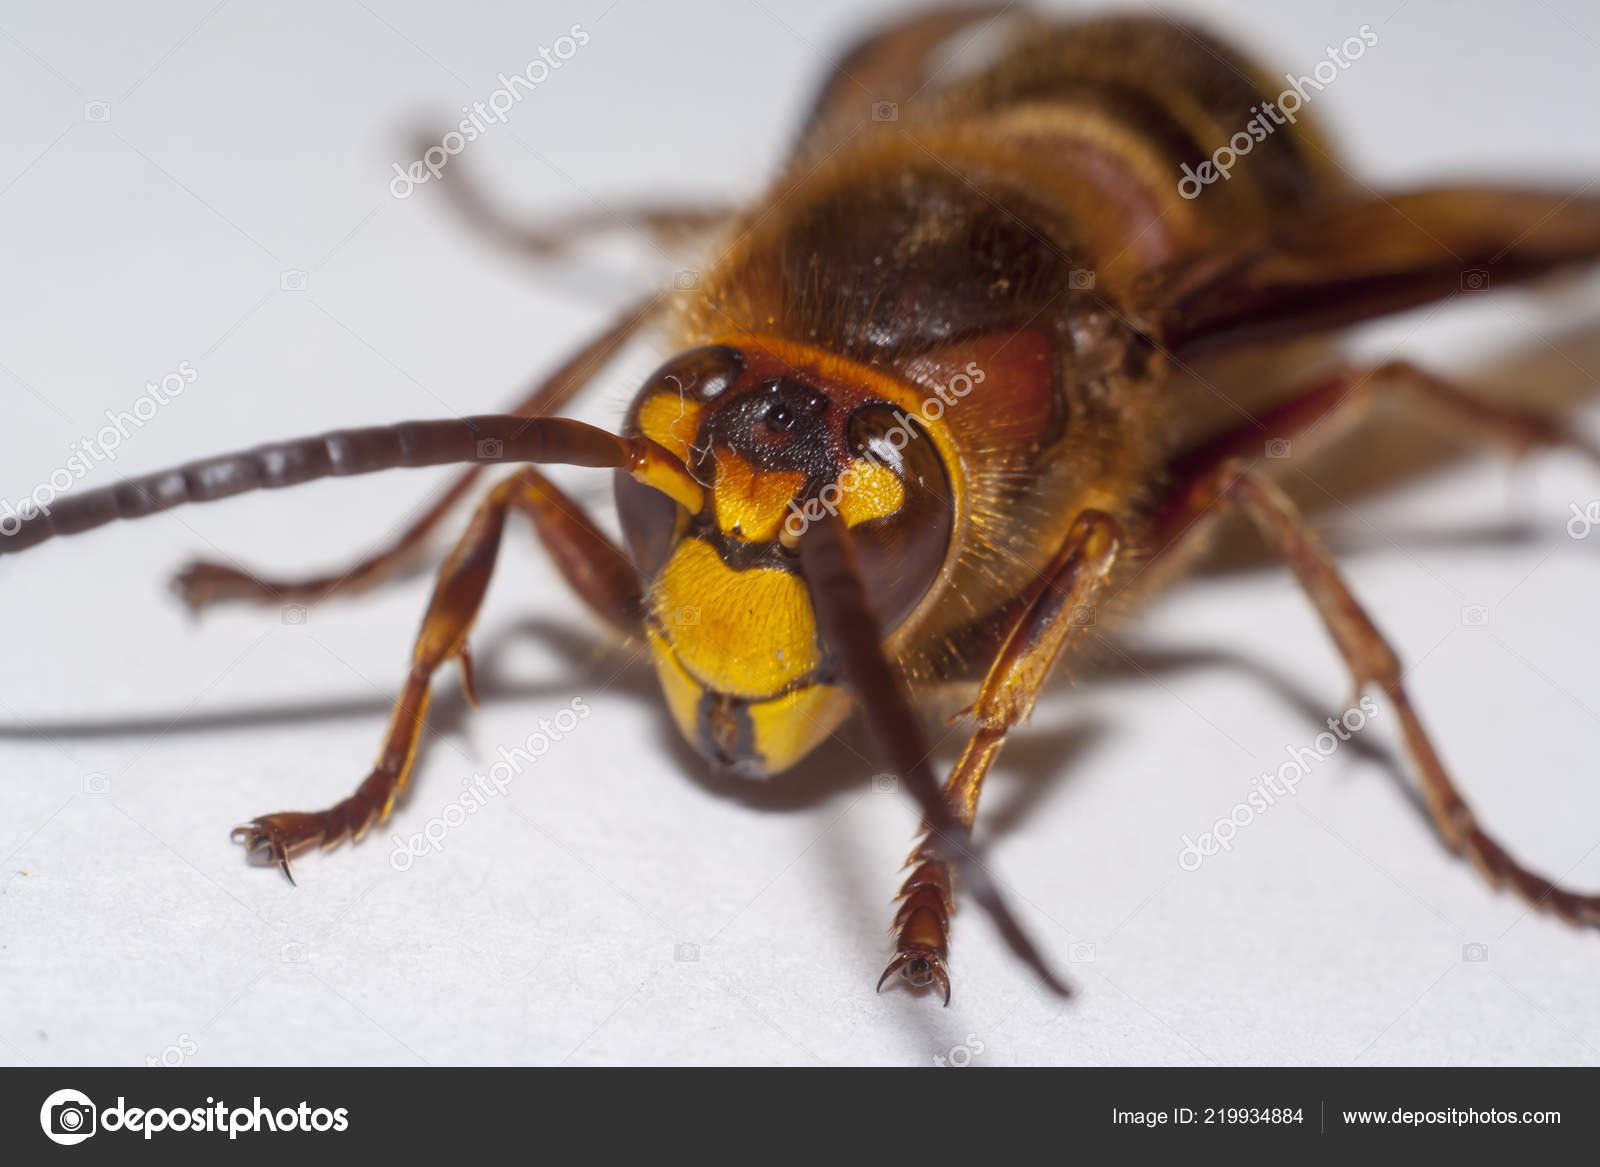 Remove blueyallerhornet. Click-the-download. Pw (virus removal guide).